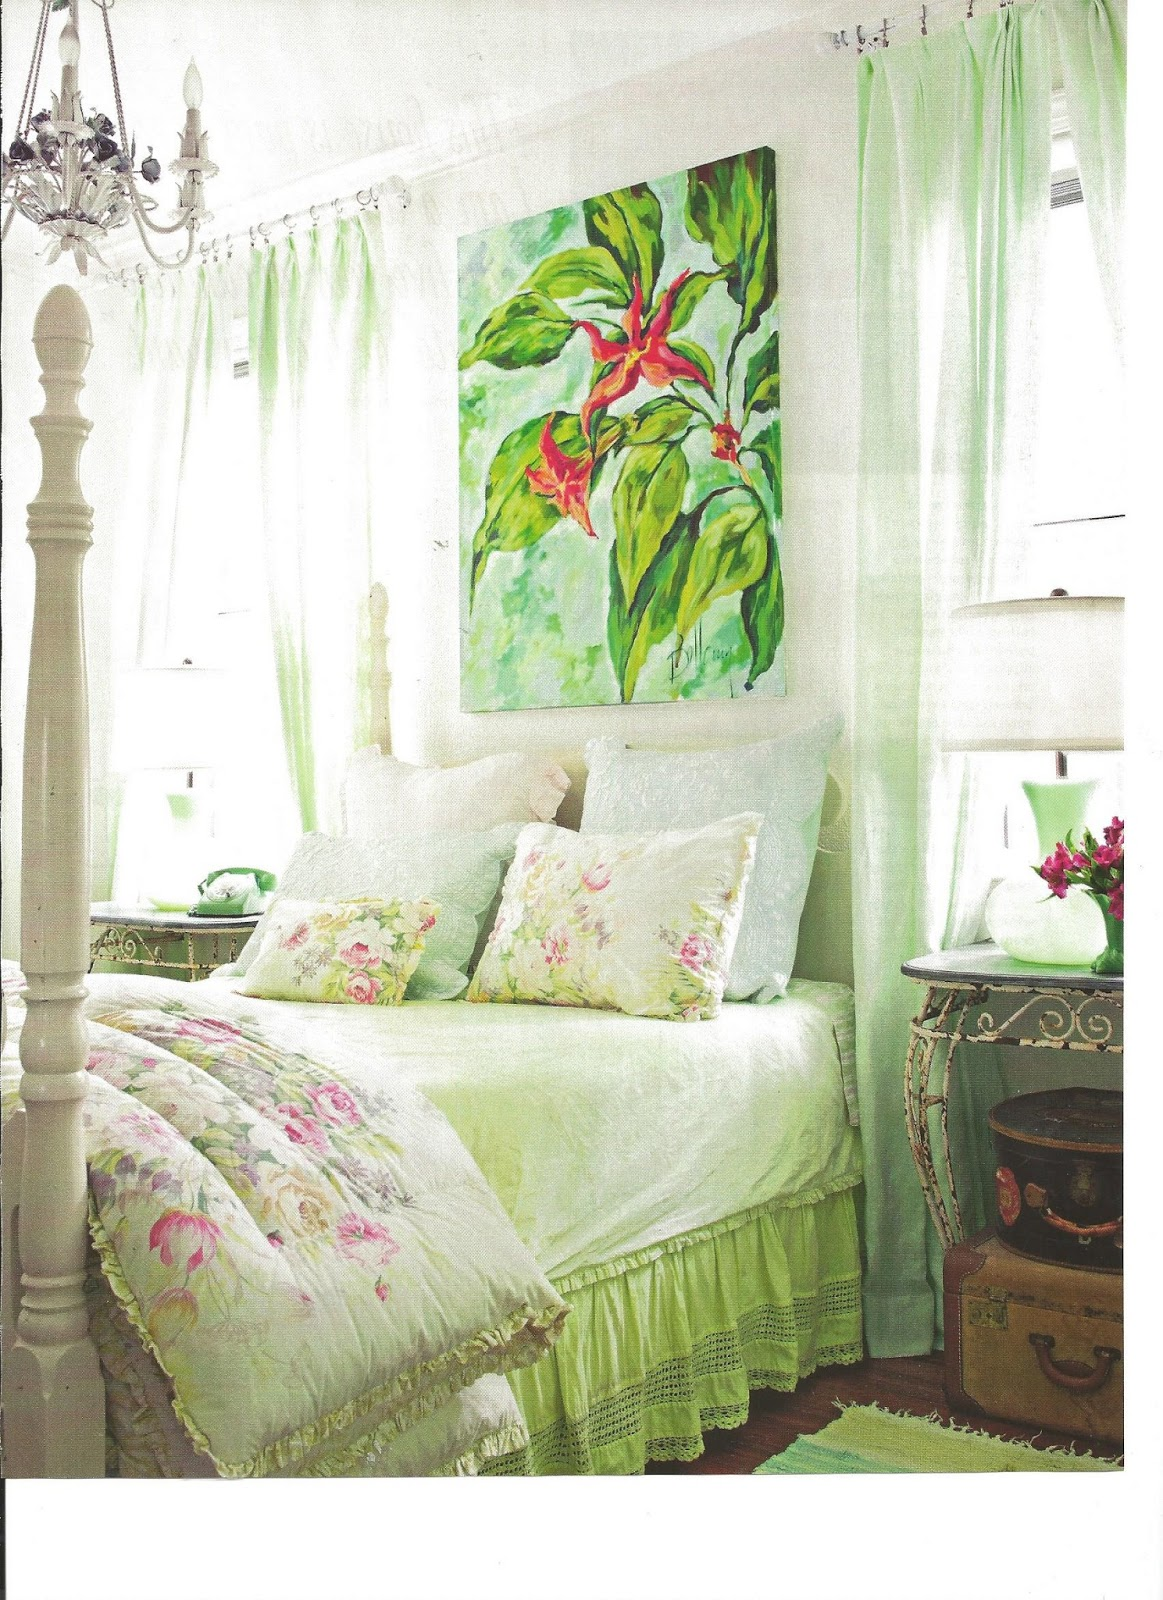 Jane Coslick Cottages My Favorite Bedroom And More: Jane Coslick Cottages : The Best Of Fleamarket Style